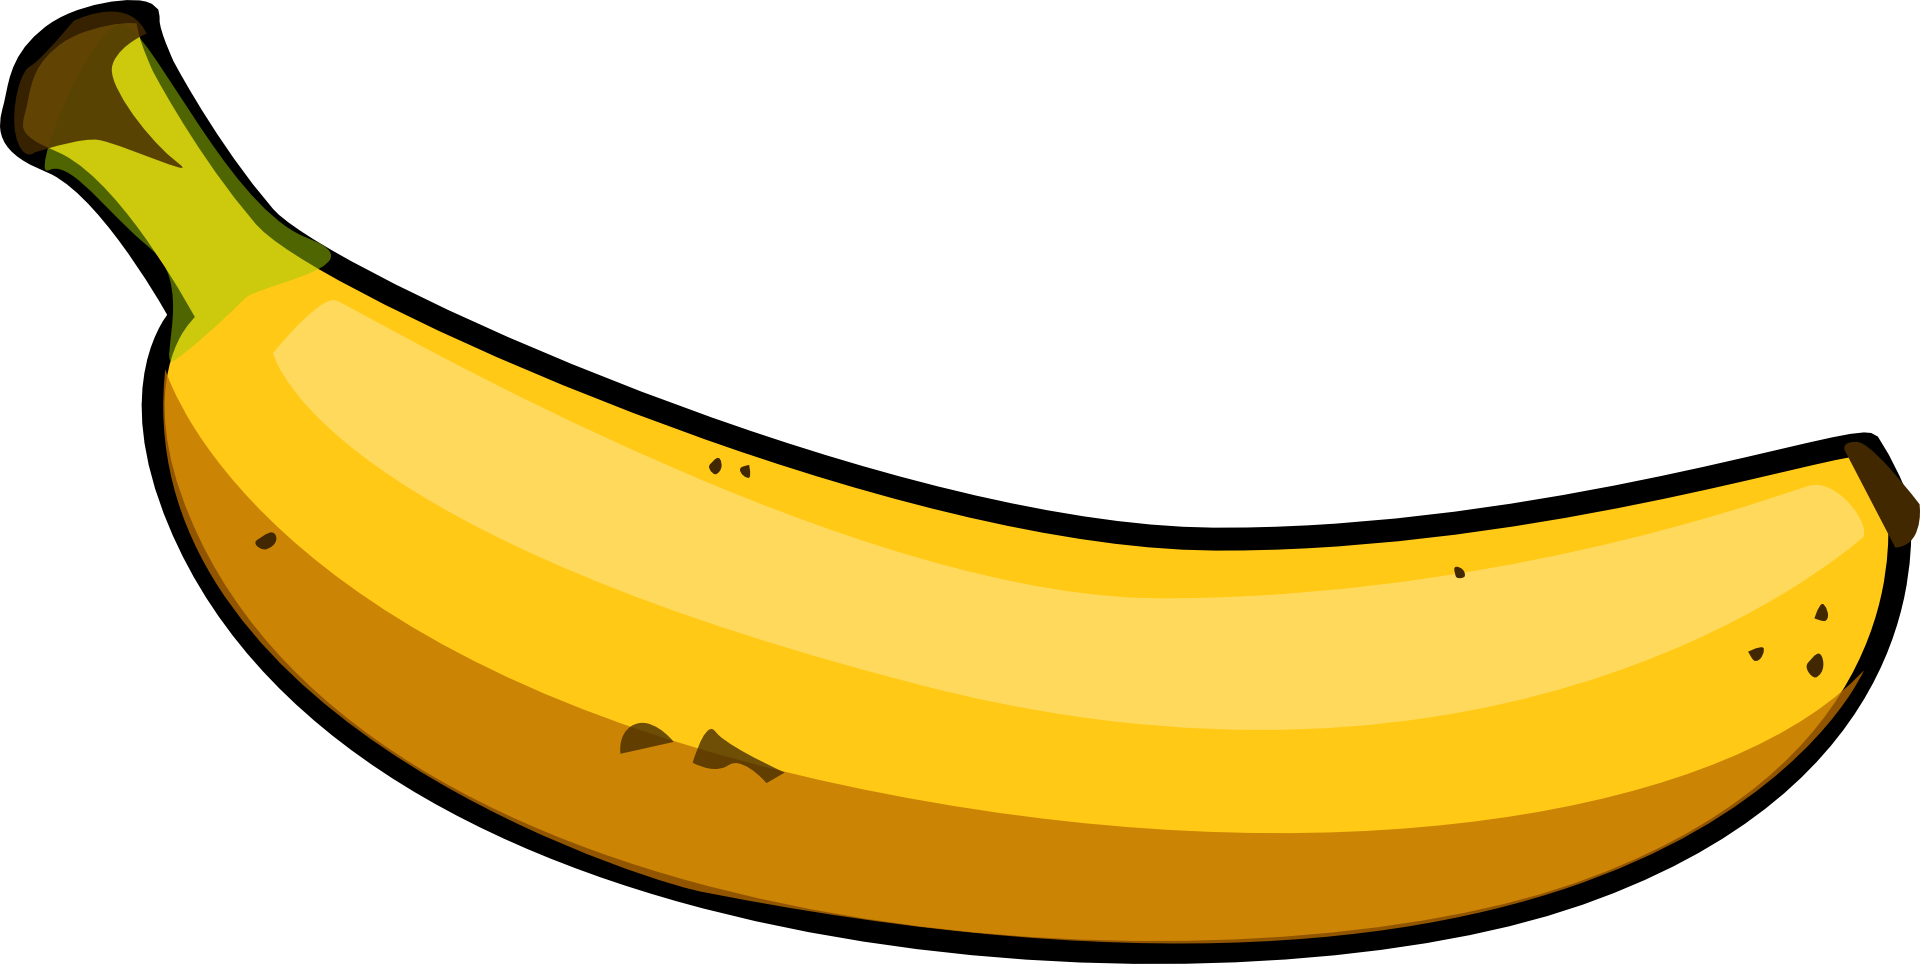 Banana png images transparent. Banan clip black and white library